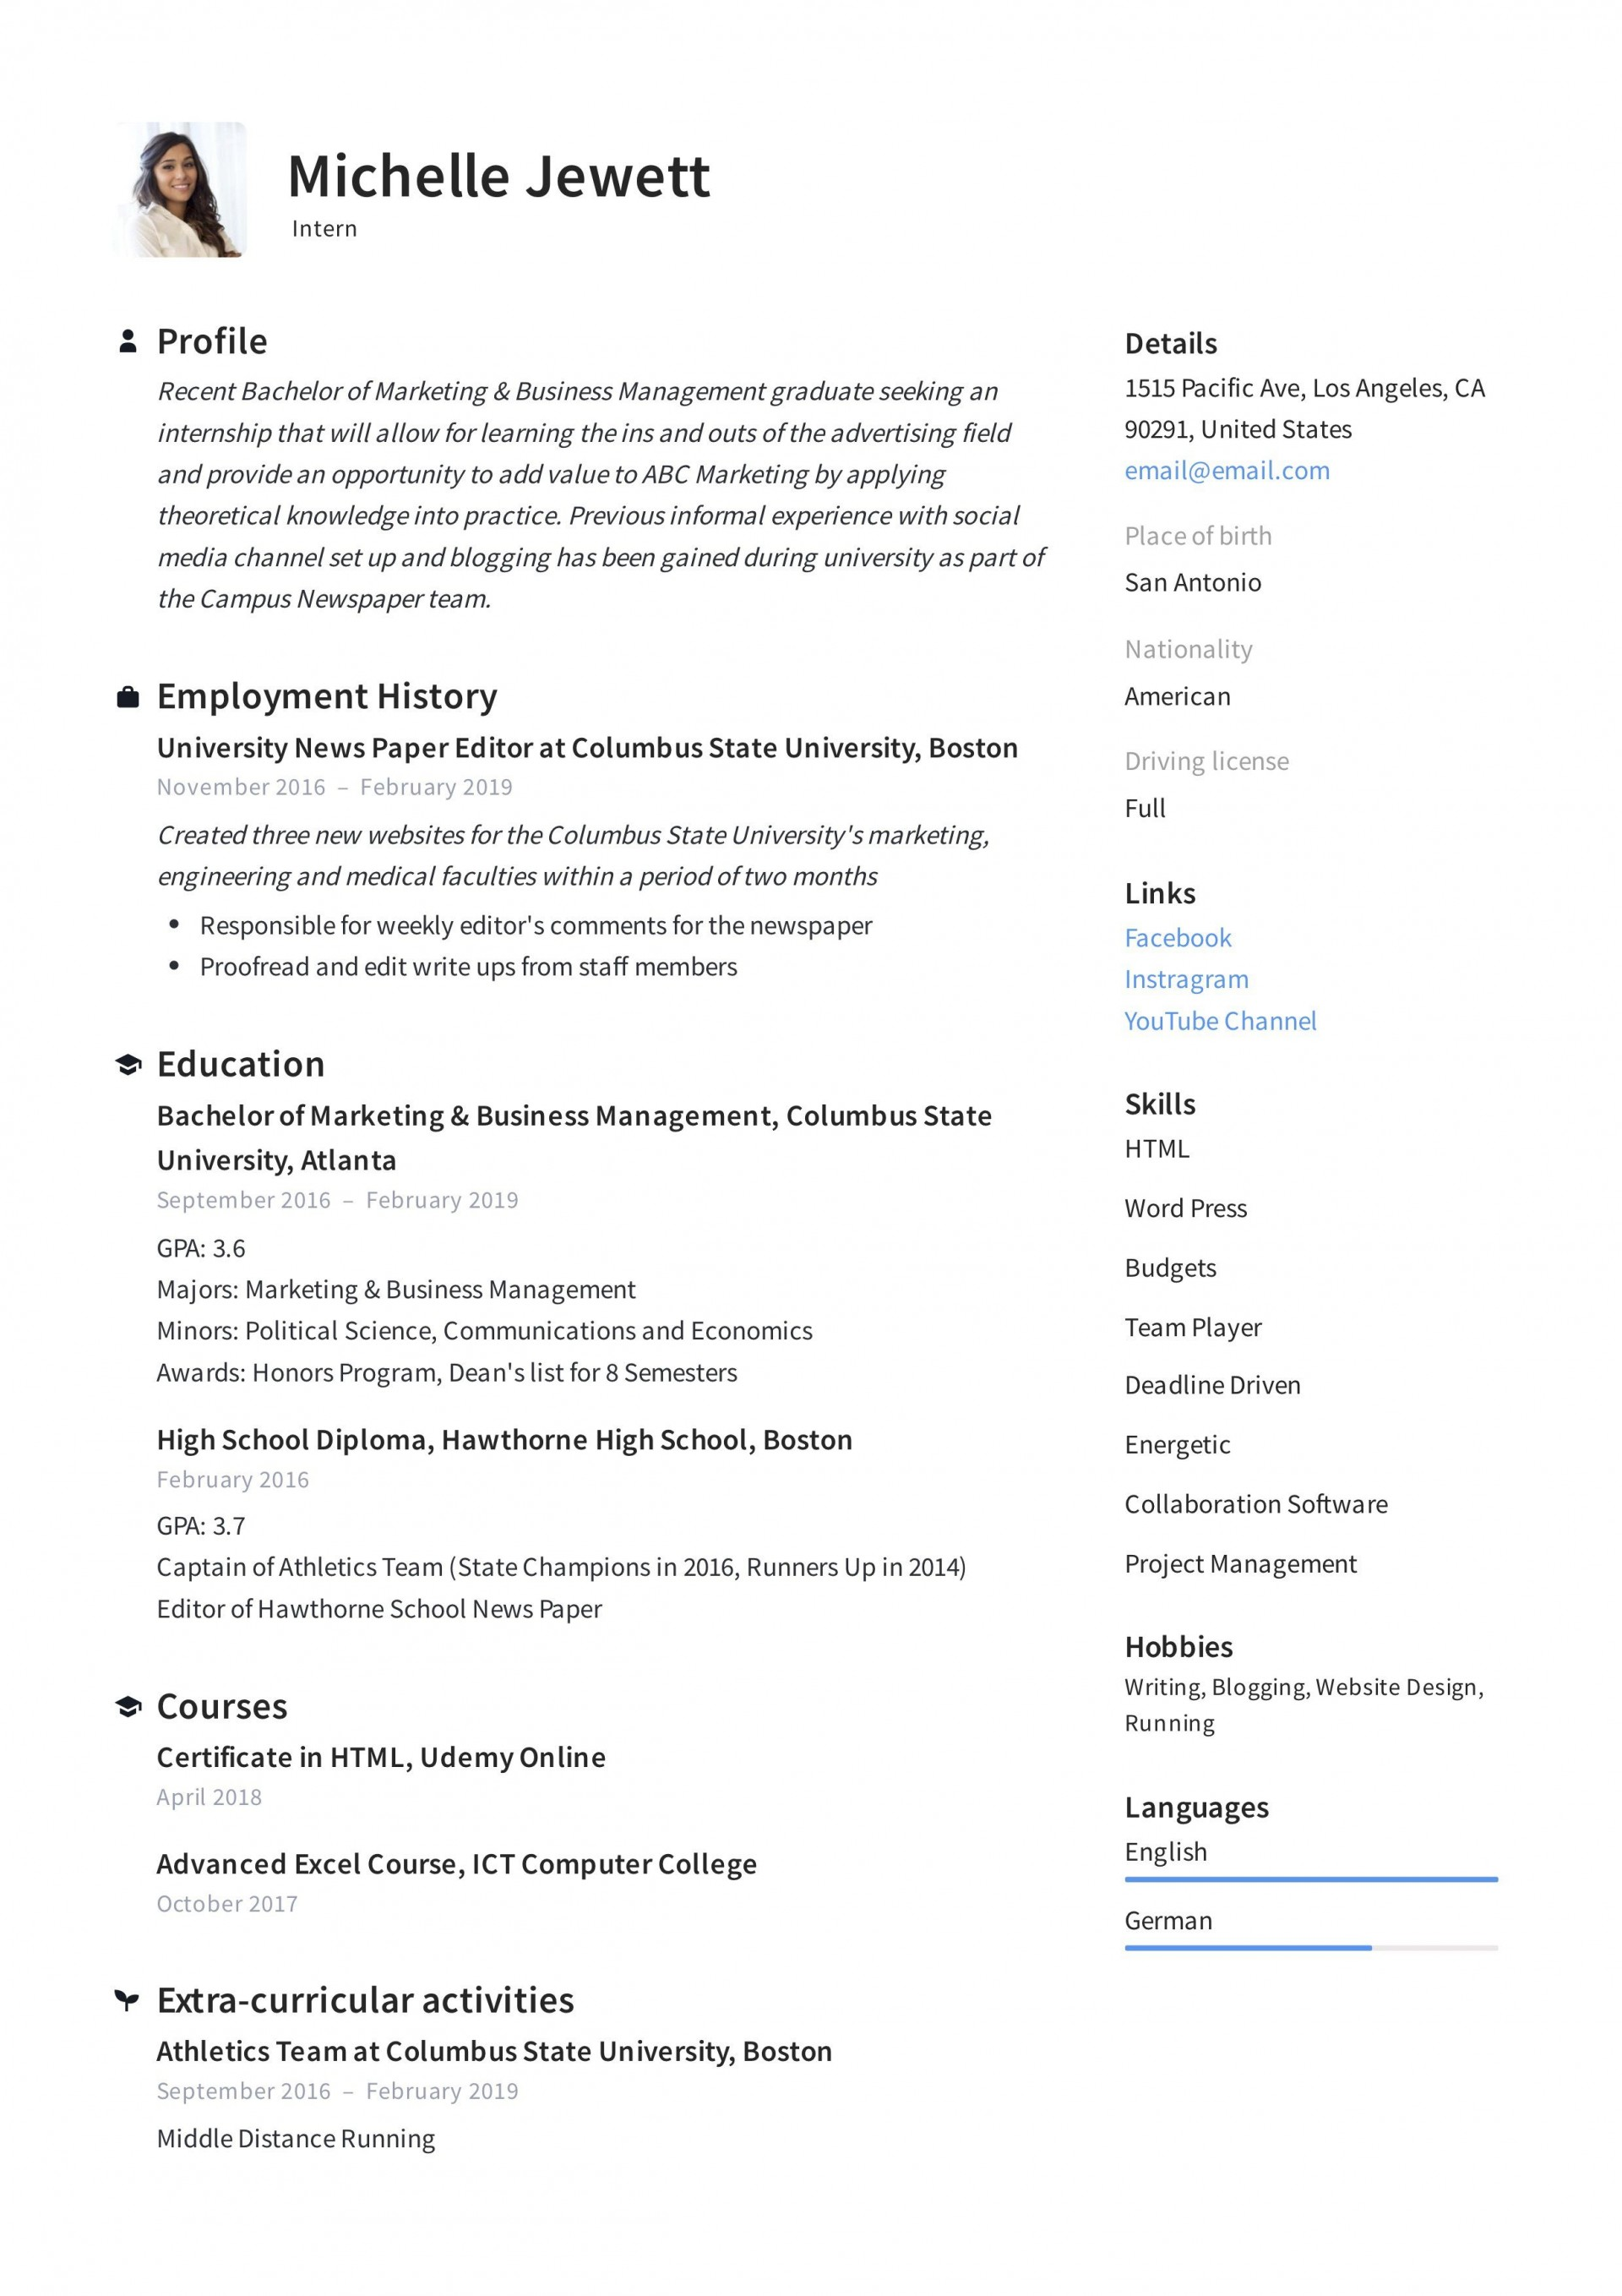 008 Unique Resume Template For Intern Image  Interns Internship In Engineering Law Example1920